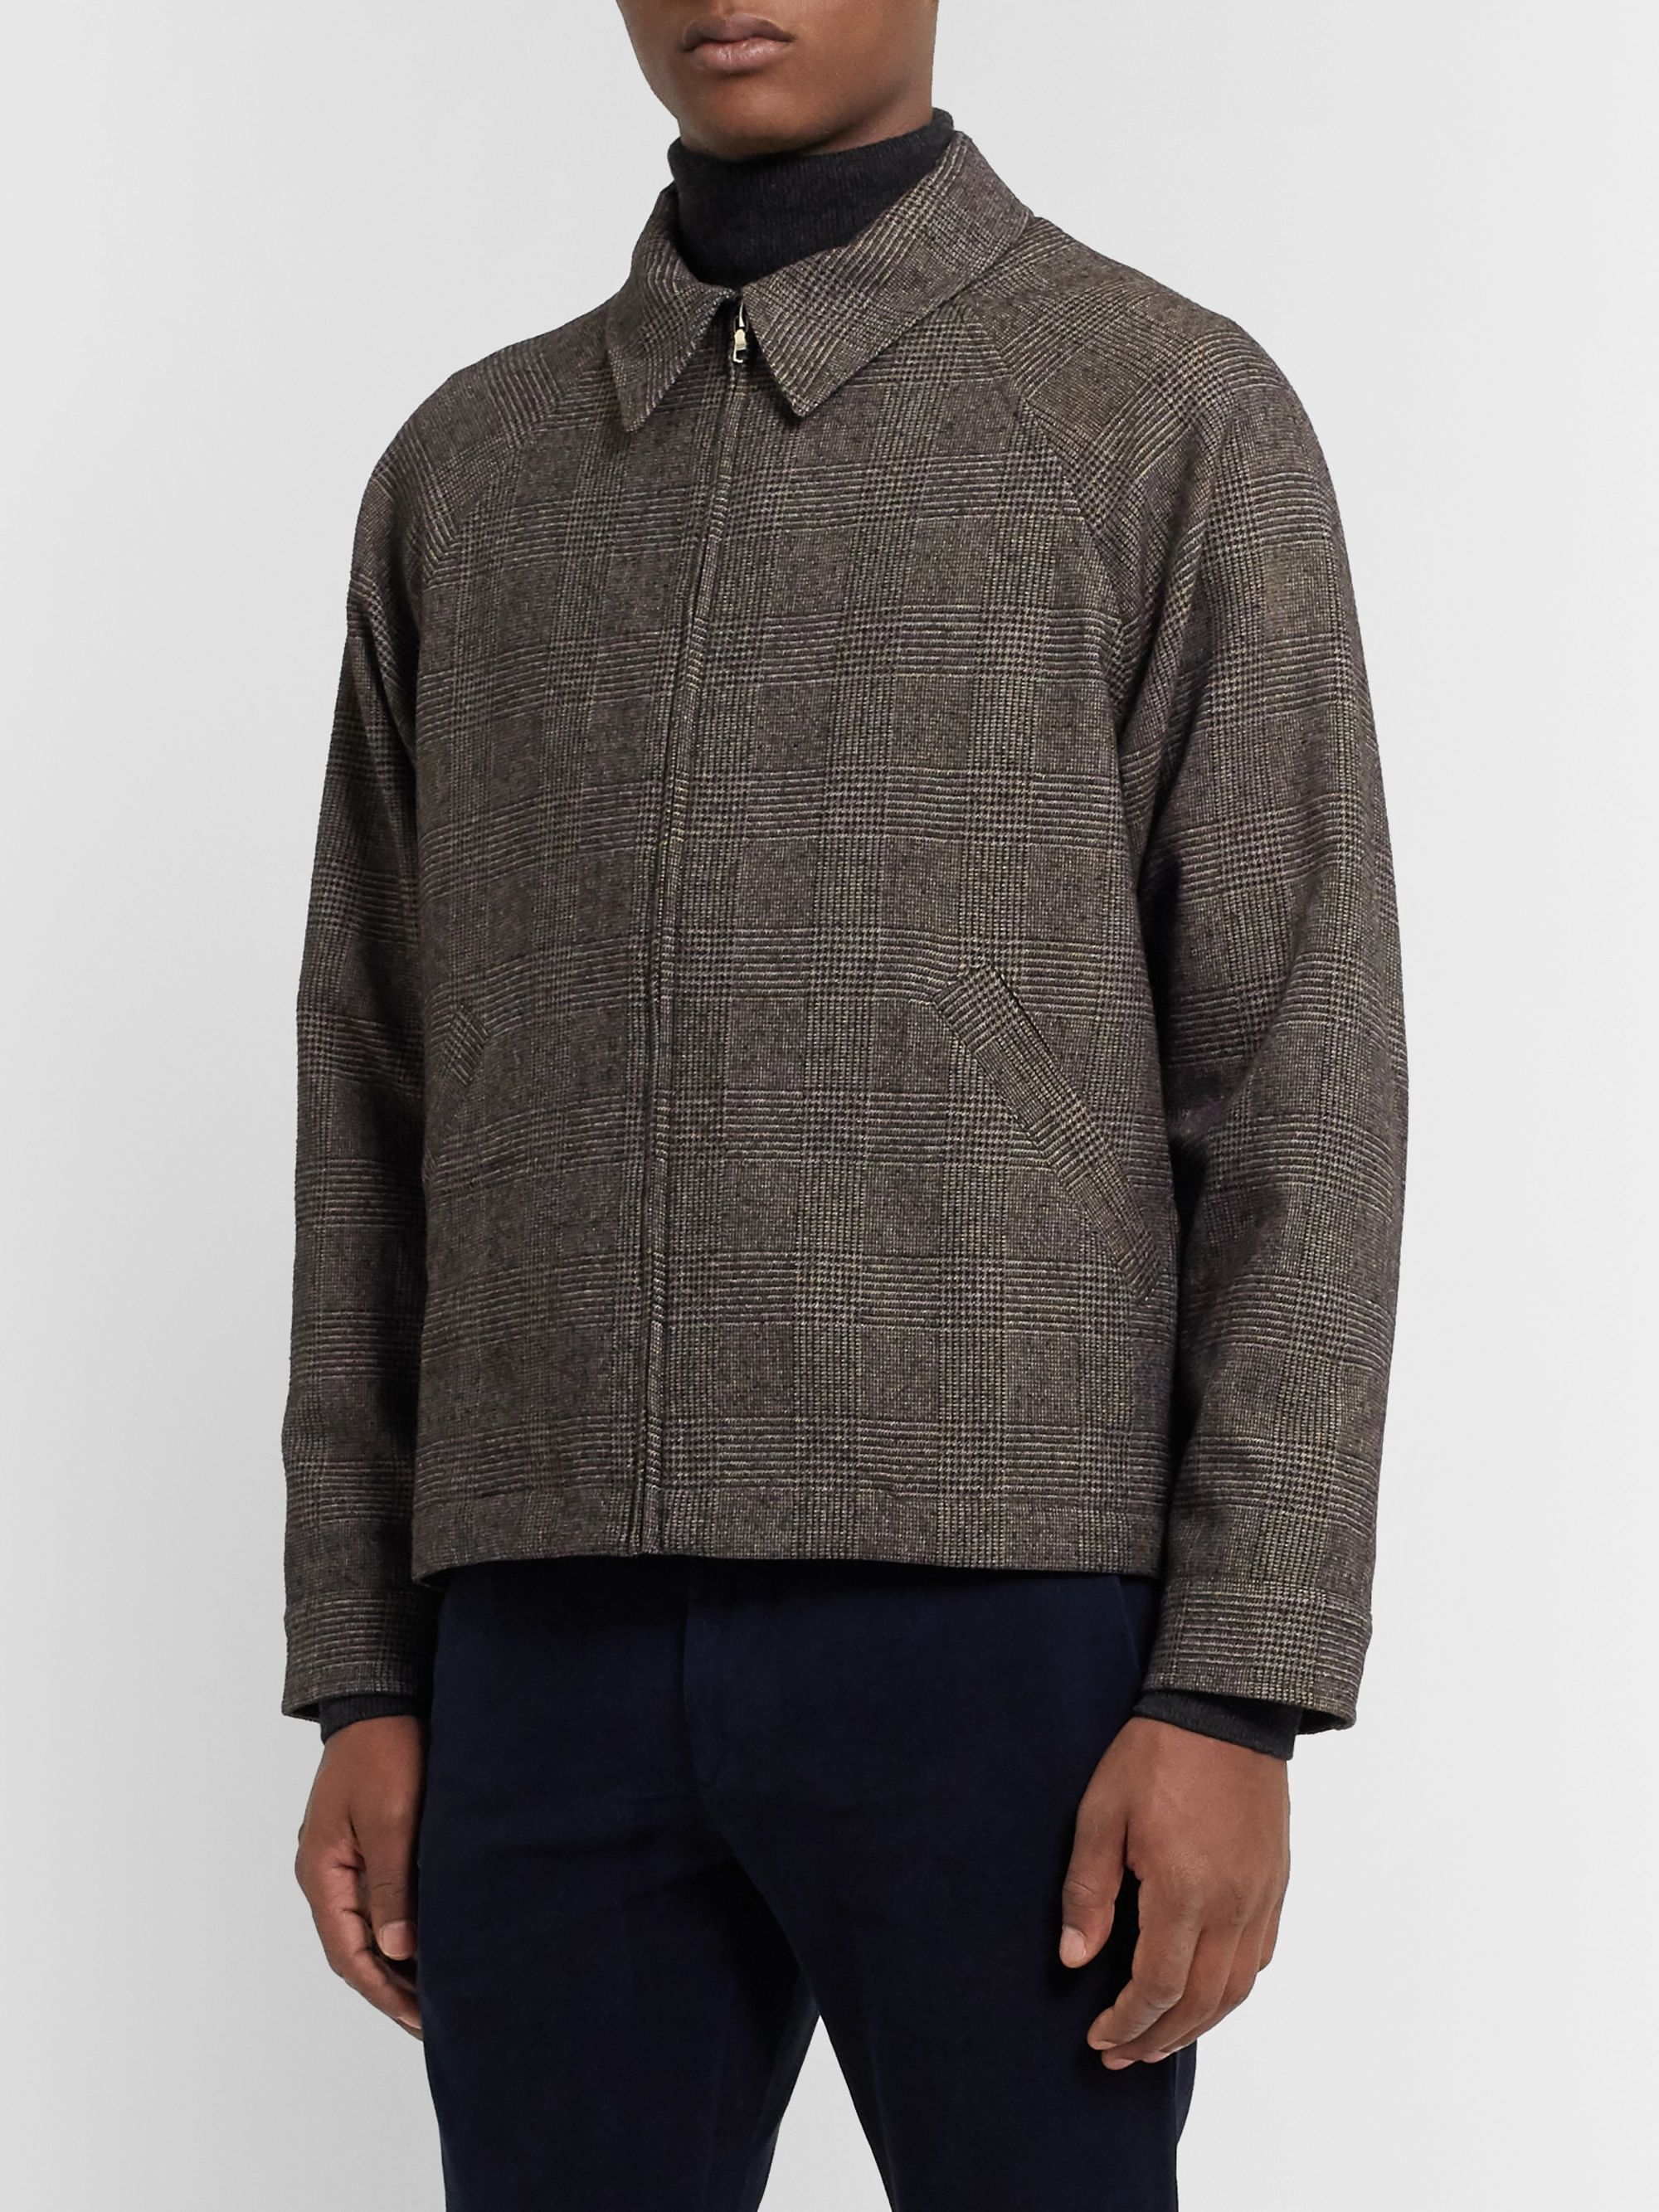 De Bonne Facture Prince of Wales Checked Virgin Wool and Cotton-Blend Jacket